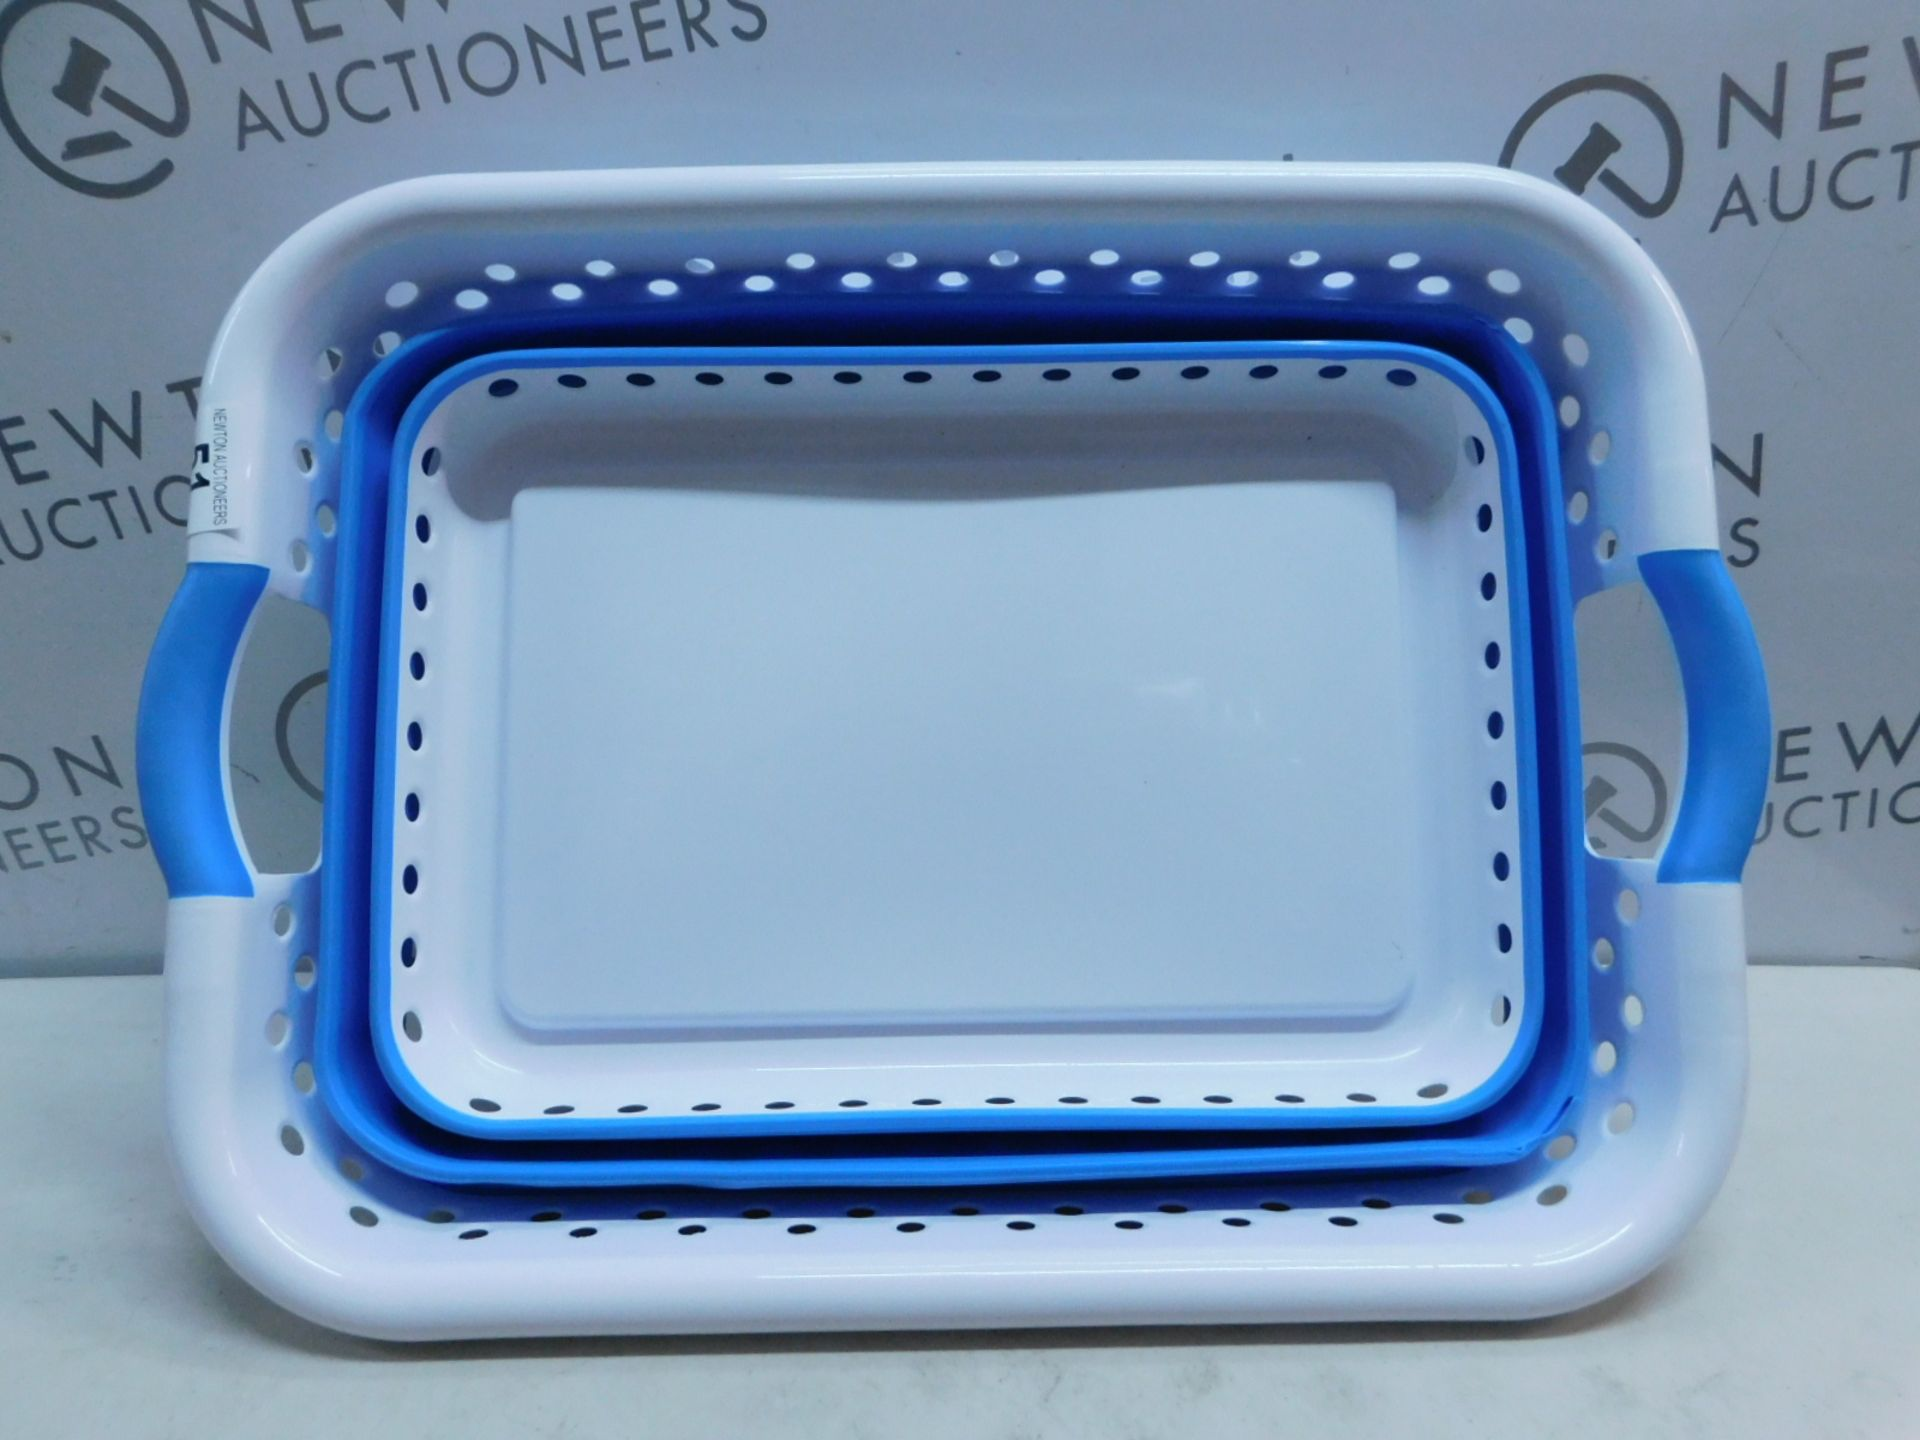 Lot 51 - 1 POP & LOAD COLLAPSIBLE SPACE SPAVING LAUNDRY BASKET RRP £34.99